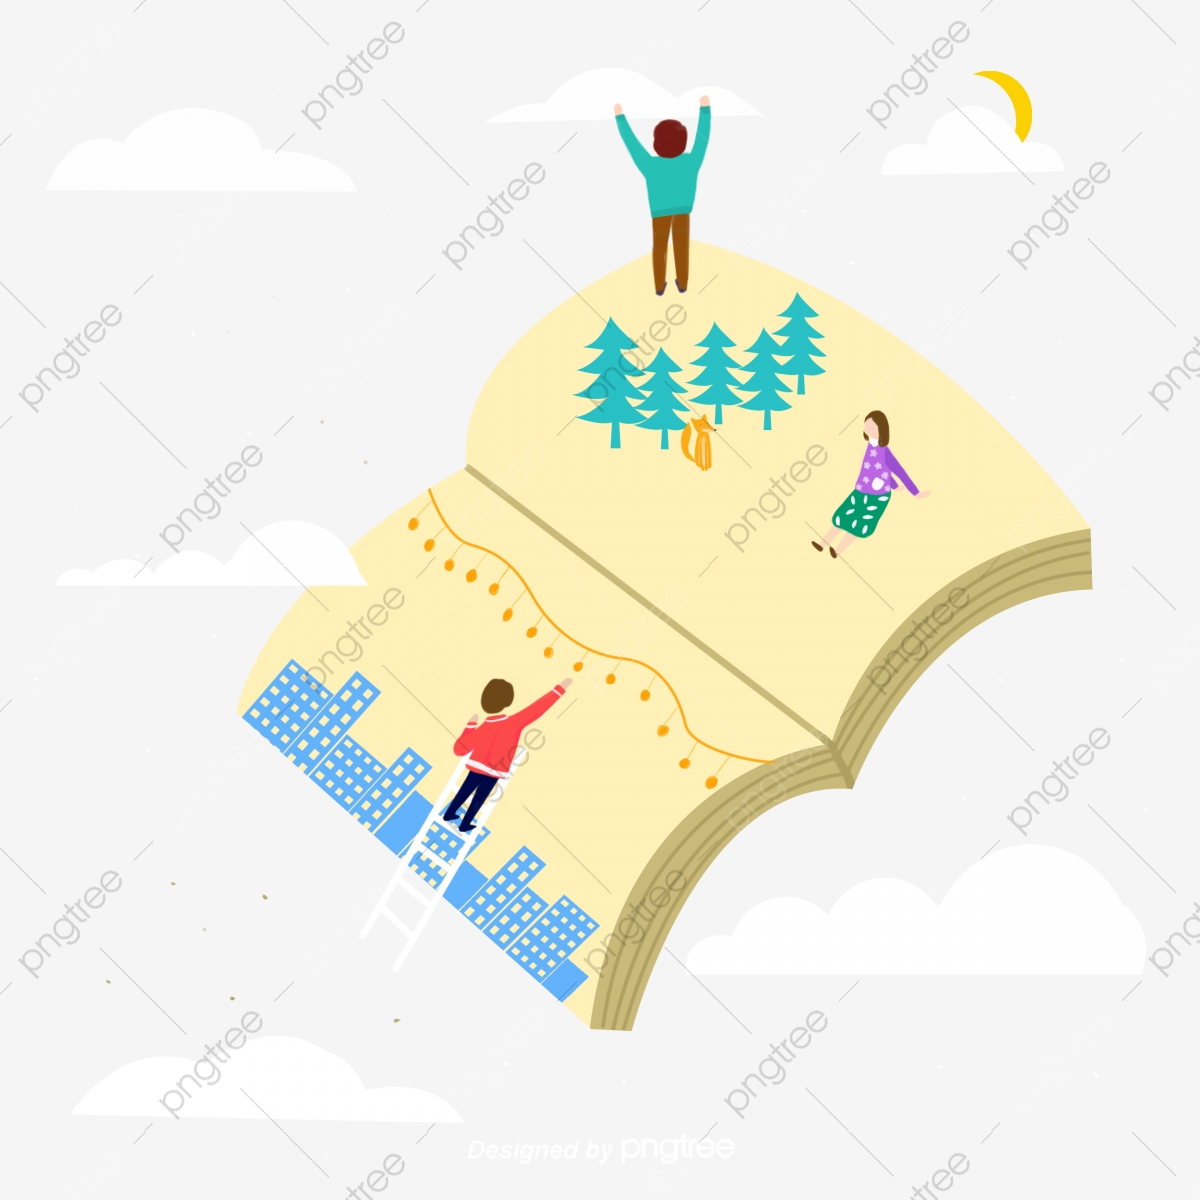 hight resolution of commercial use resource upgrade to premium plan and get license authorization upgrade now book fairy tale world book clipart